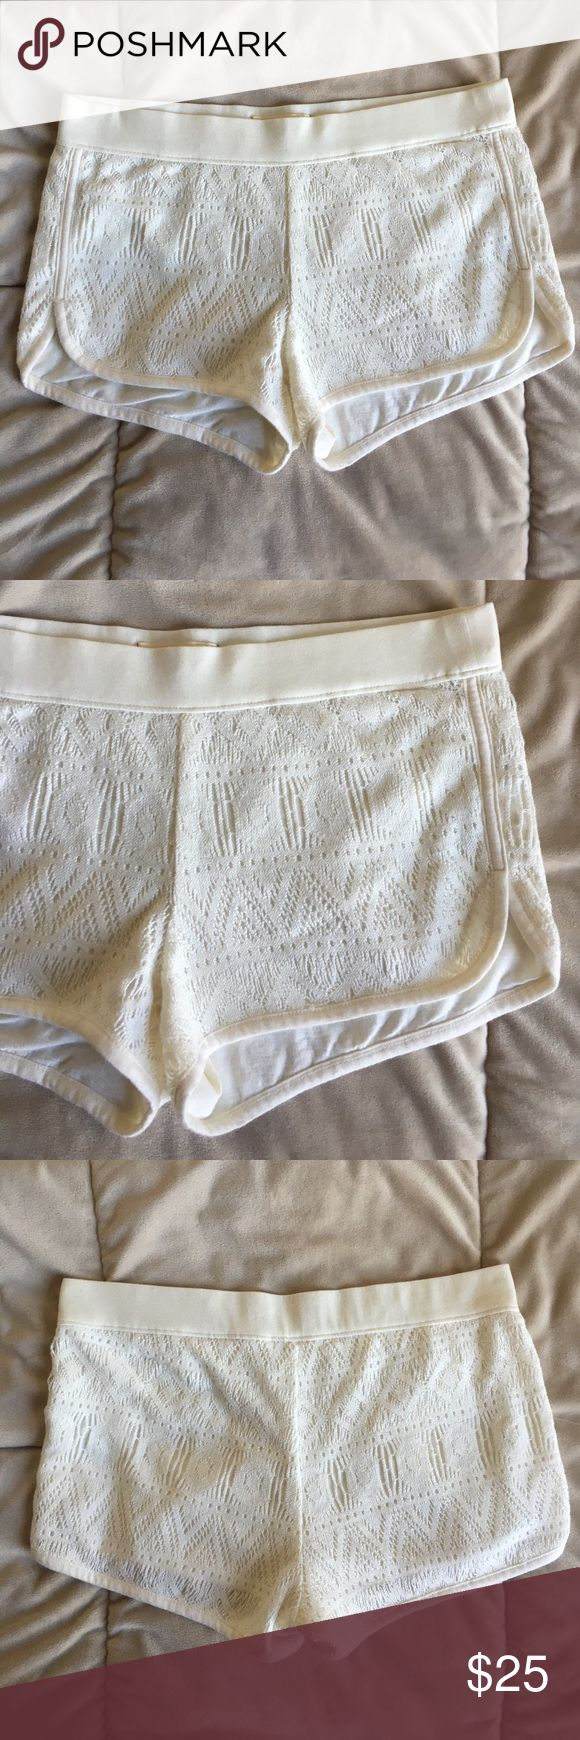 Cream crochet, dolphin knit shorts New without tags, never worn Hollister Shorts